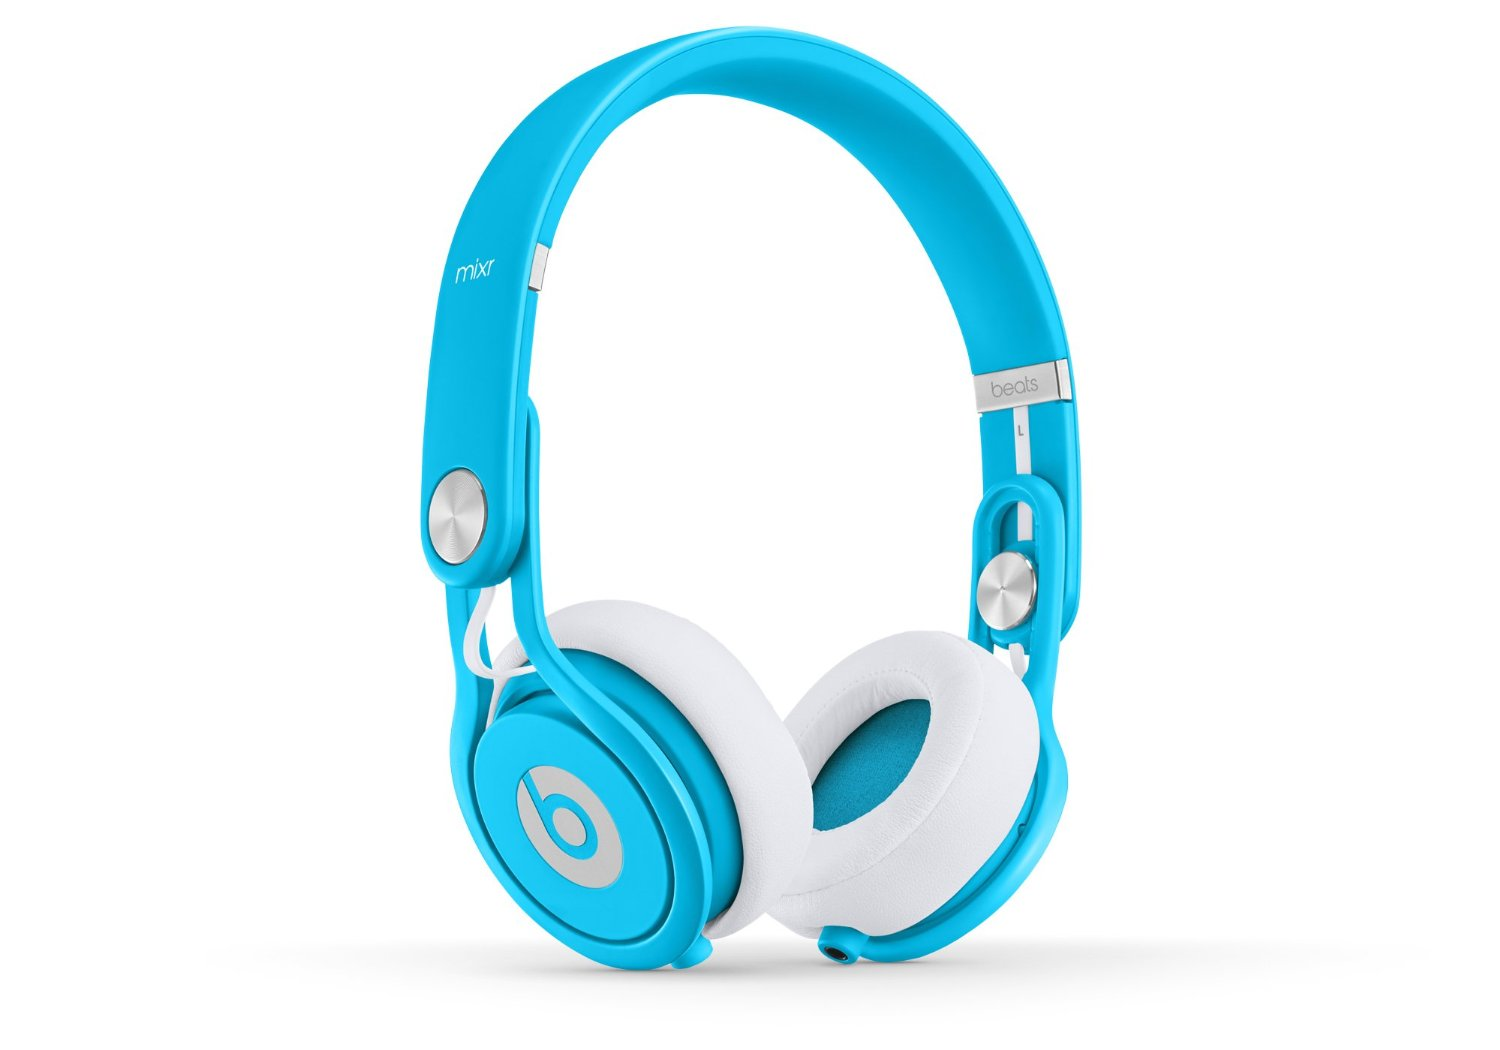 Beats By Dre Mixr DJ On-Ear Headphones - Neon Blue - Check Back Soon ... ef8f5024c